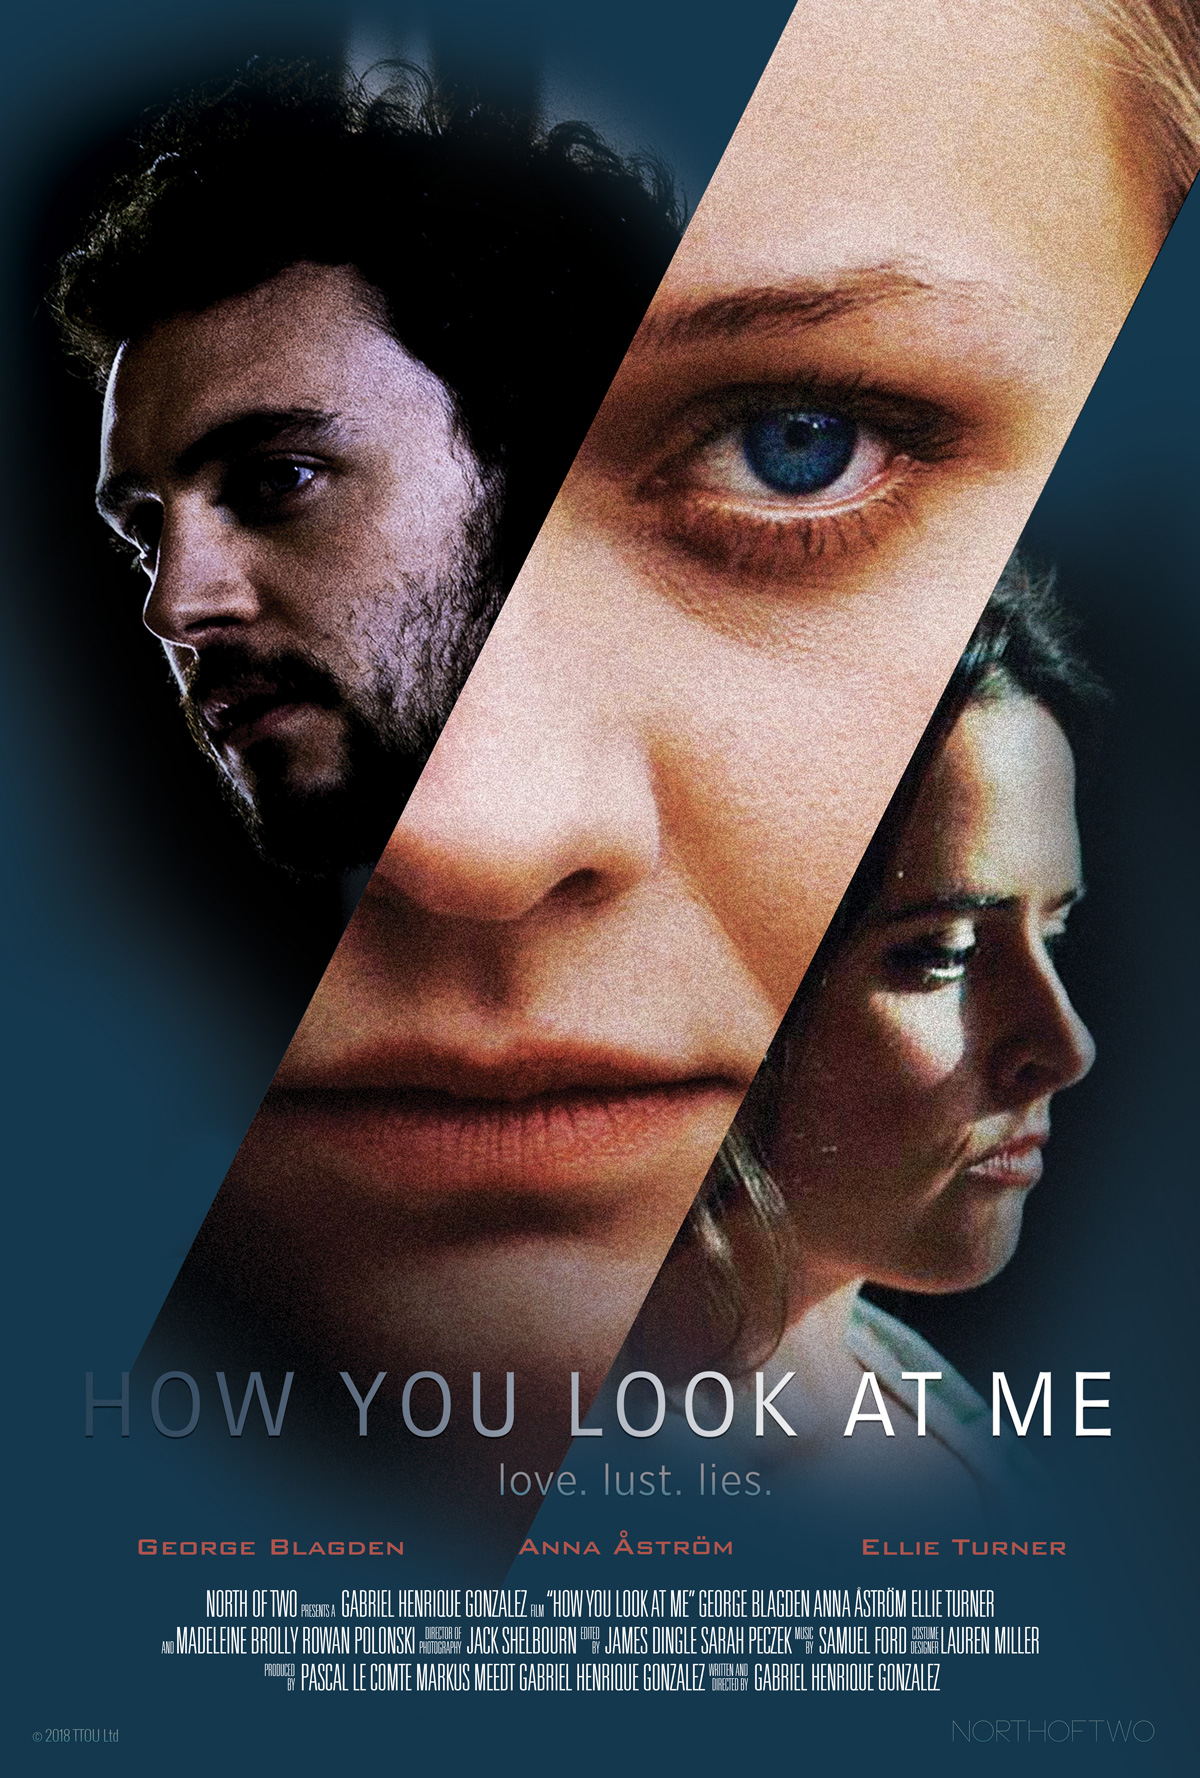 HowYouLookAtMe-POSTER_blue-eyes-SMALL.jpg